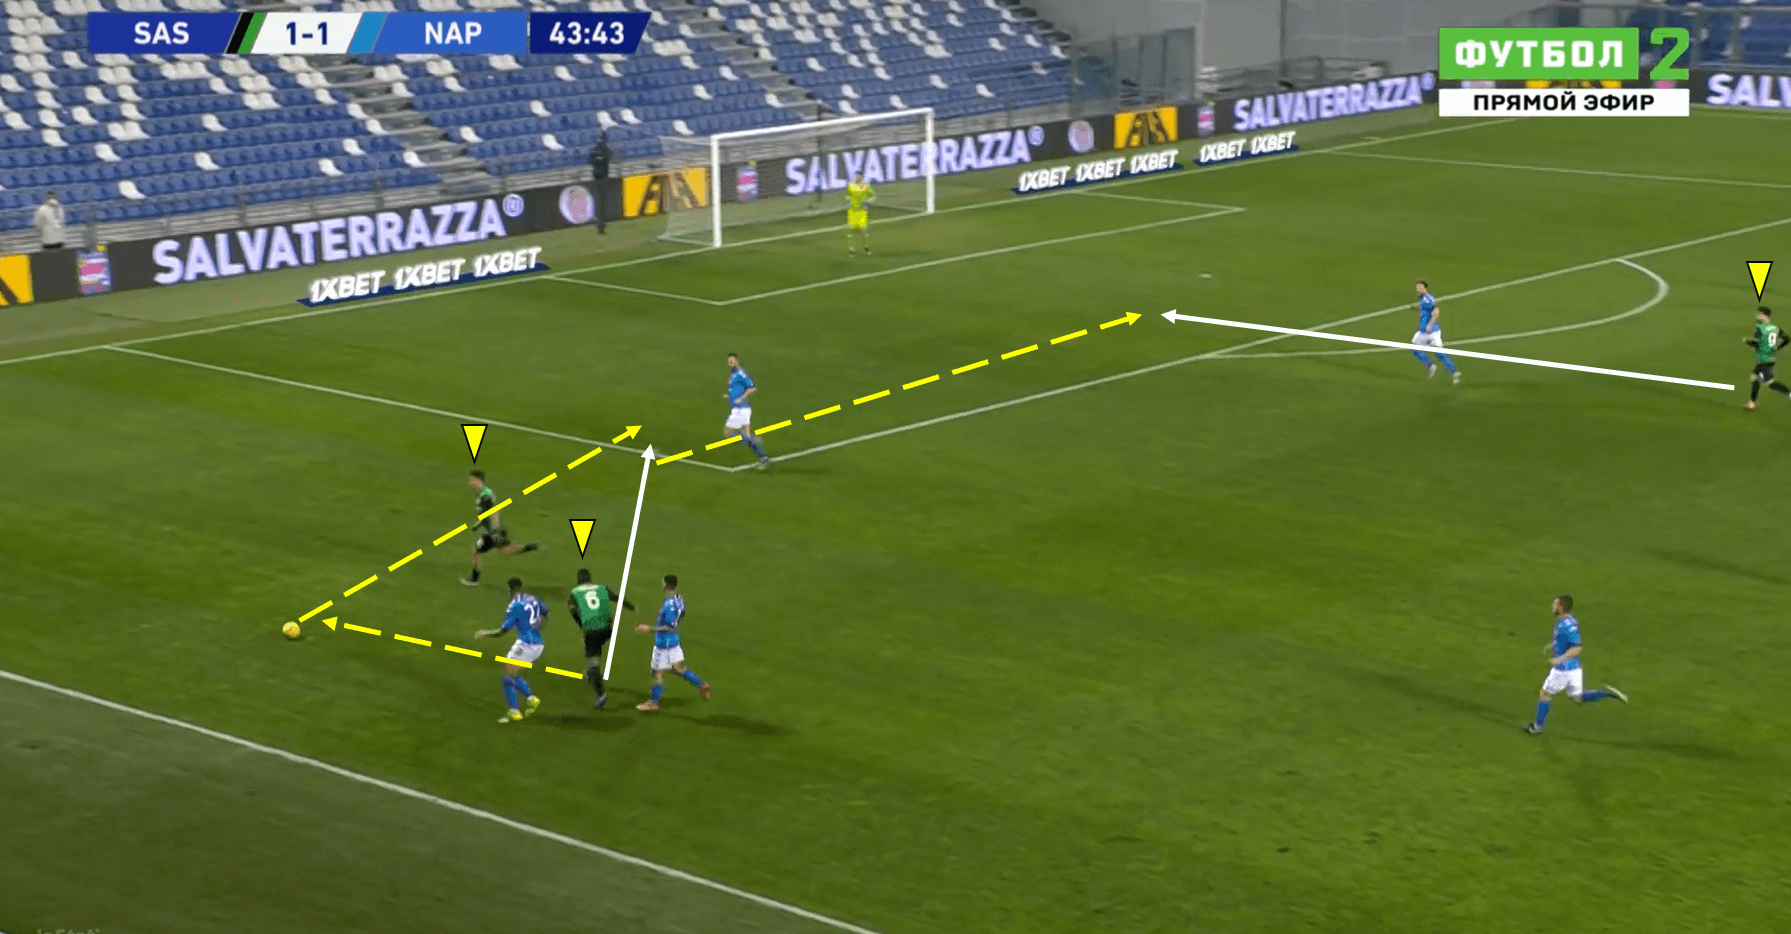 De Zerbi's Determined Men: How Sassuolo forced Napoli's switch to plan B Tactical Analysis Tactics